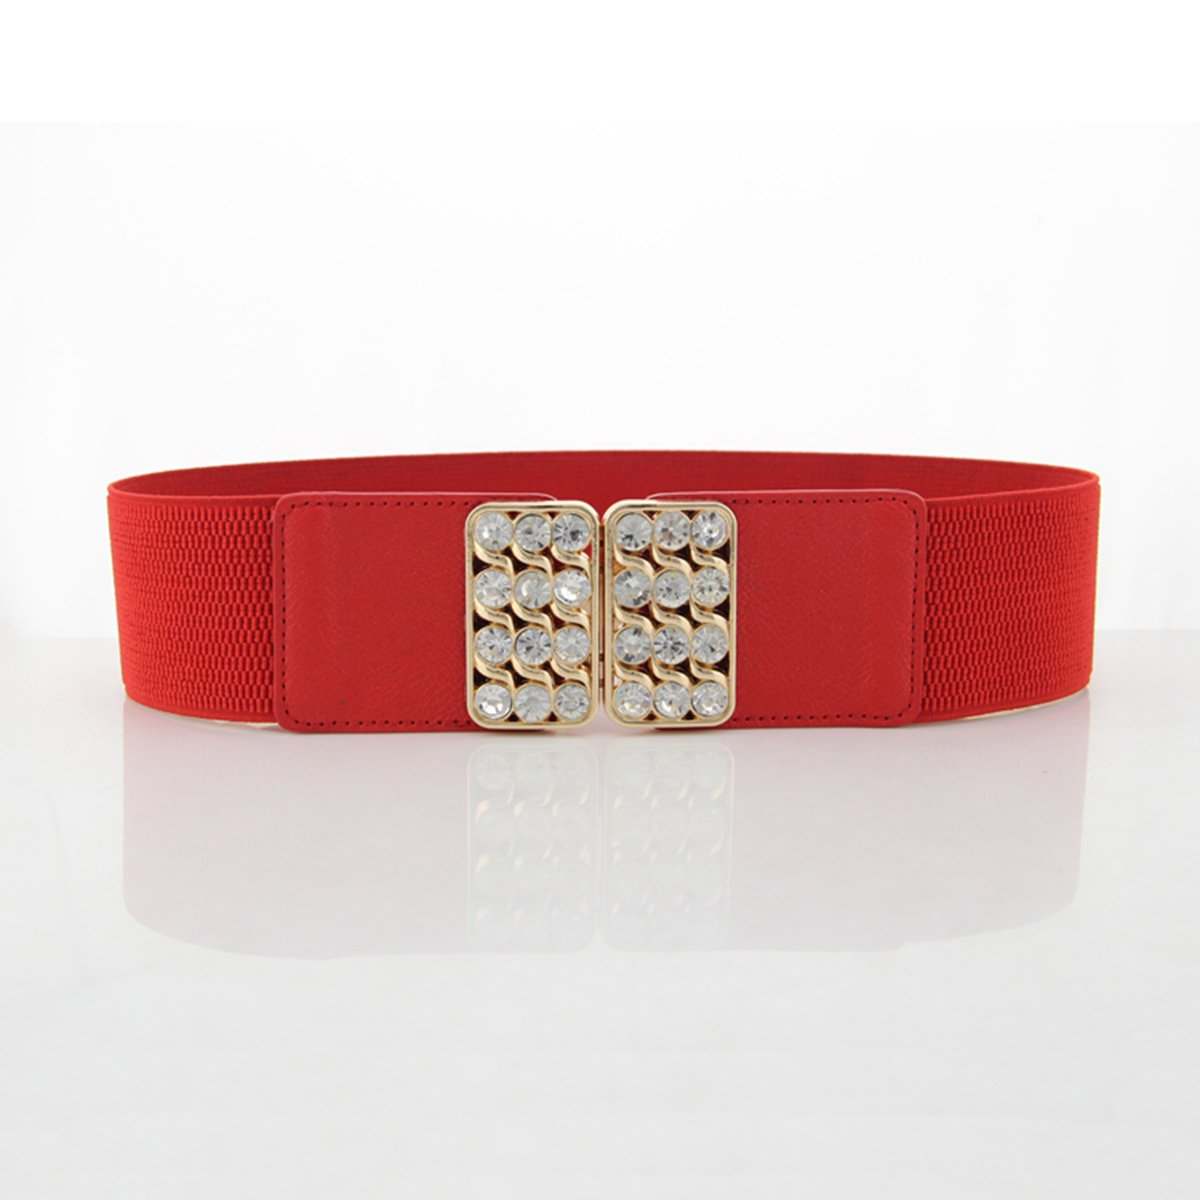 Womens Love Heart Diamonte Buckle Elasticated Stretchy Cinch Belts One Size